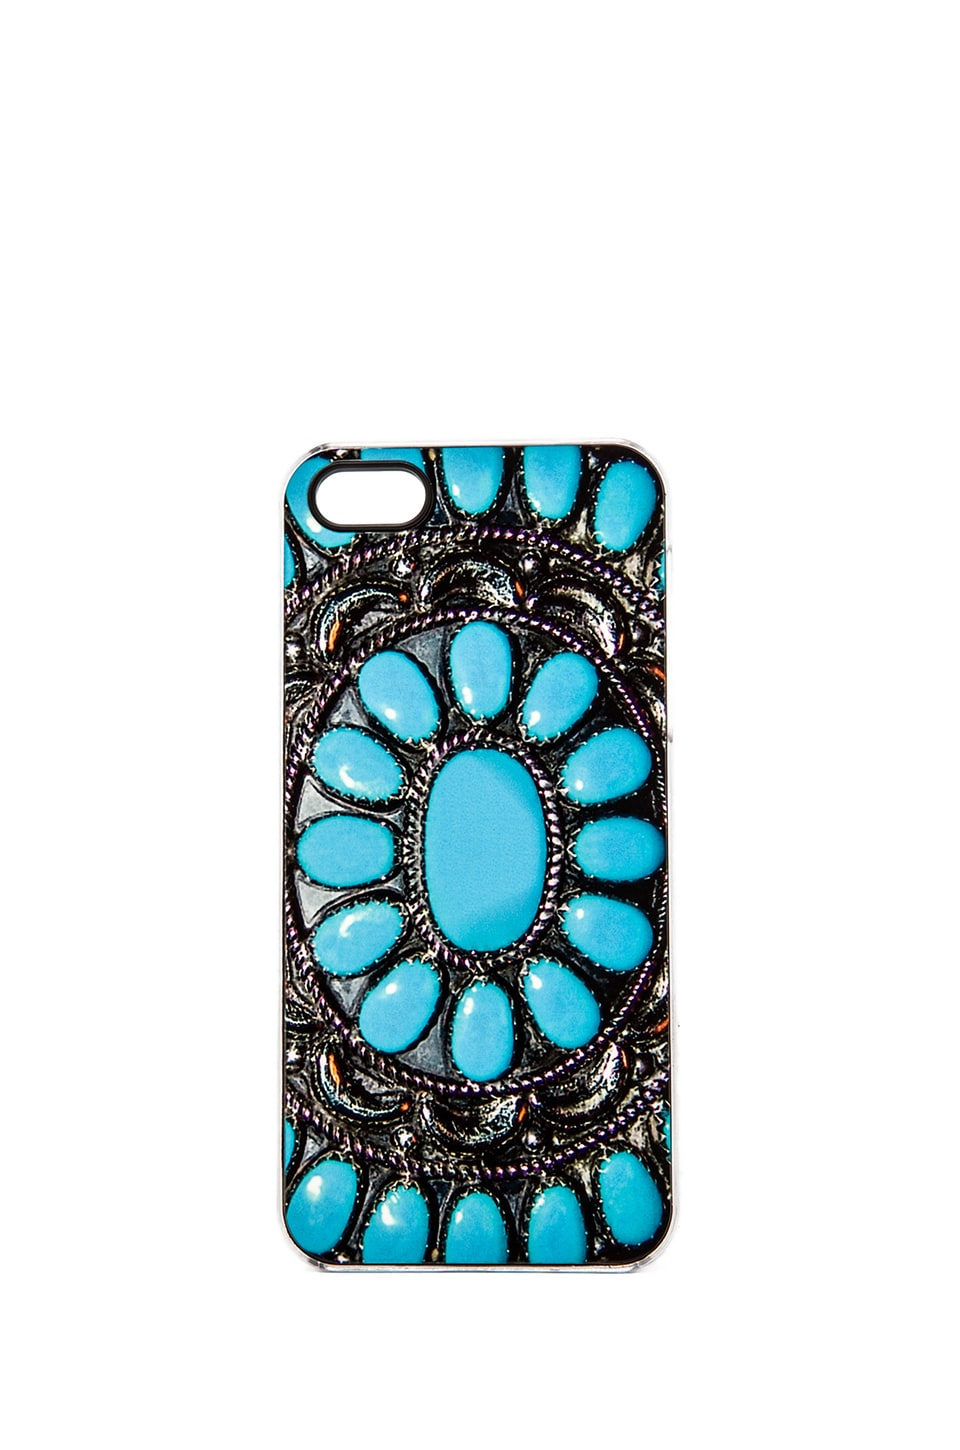 ZERO GRAVITY Desert Gem iPhone 5 Case in Turquoise